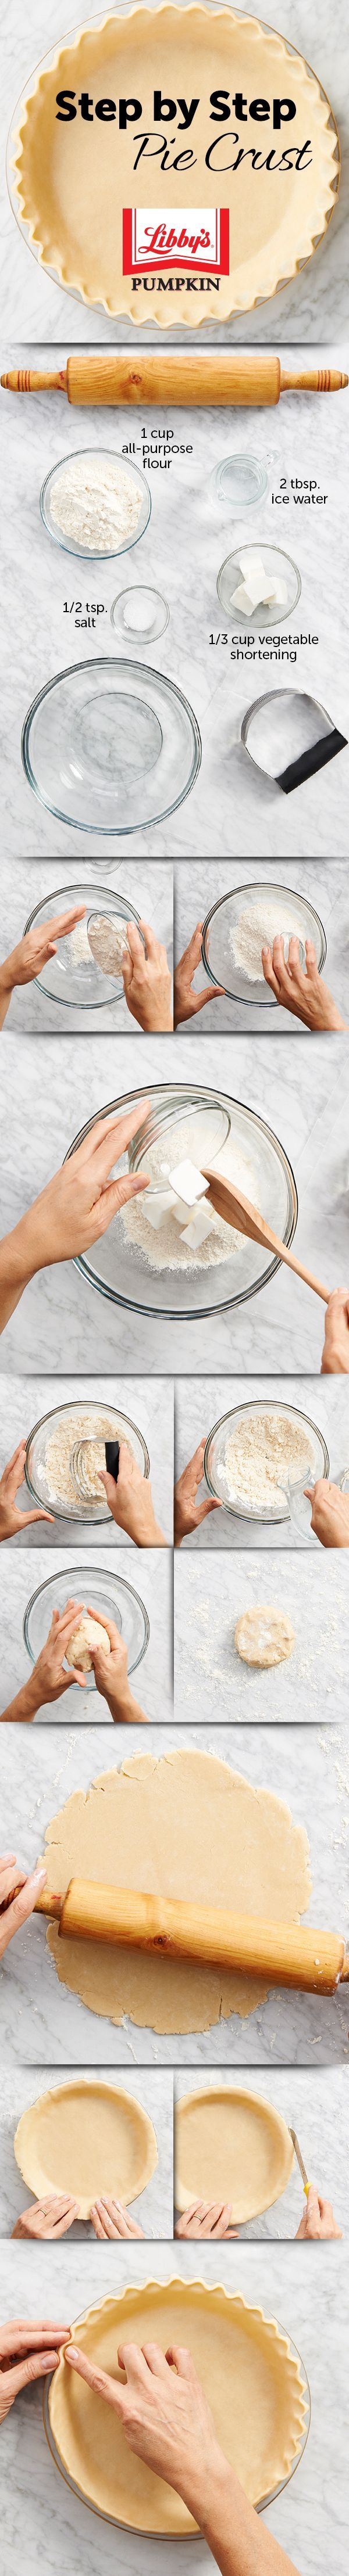 This Homemade Pie Crust #Recipe is a no-fail recipe made easily with ingredients usually found in most kitchens. Be sure to use cold water and keep well-wrapped until ready to use! #Thanksgiving #Baking https://www.verybestbaking.com/recipes/28518/homemade-pie-crust-recipe/?keywords=pie+crust&crlt.pid=camp.WHtHkxZAfKx7